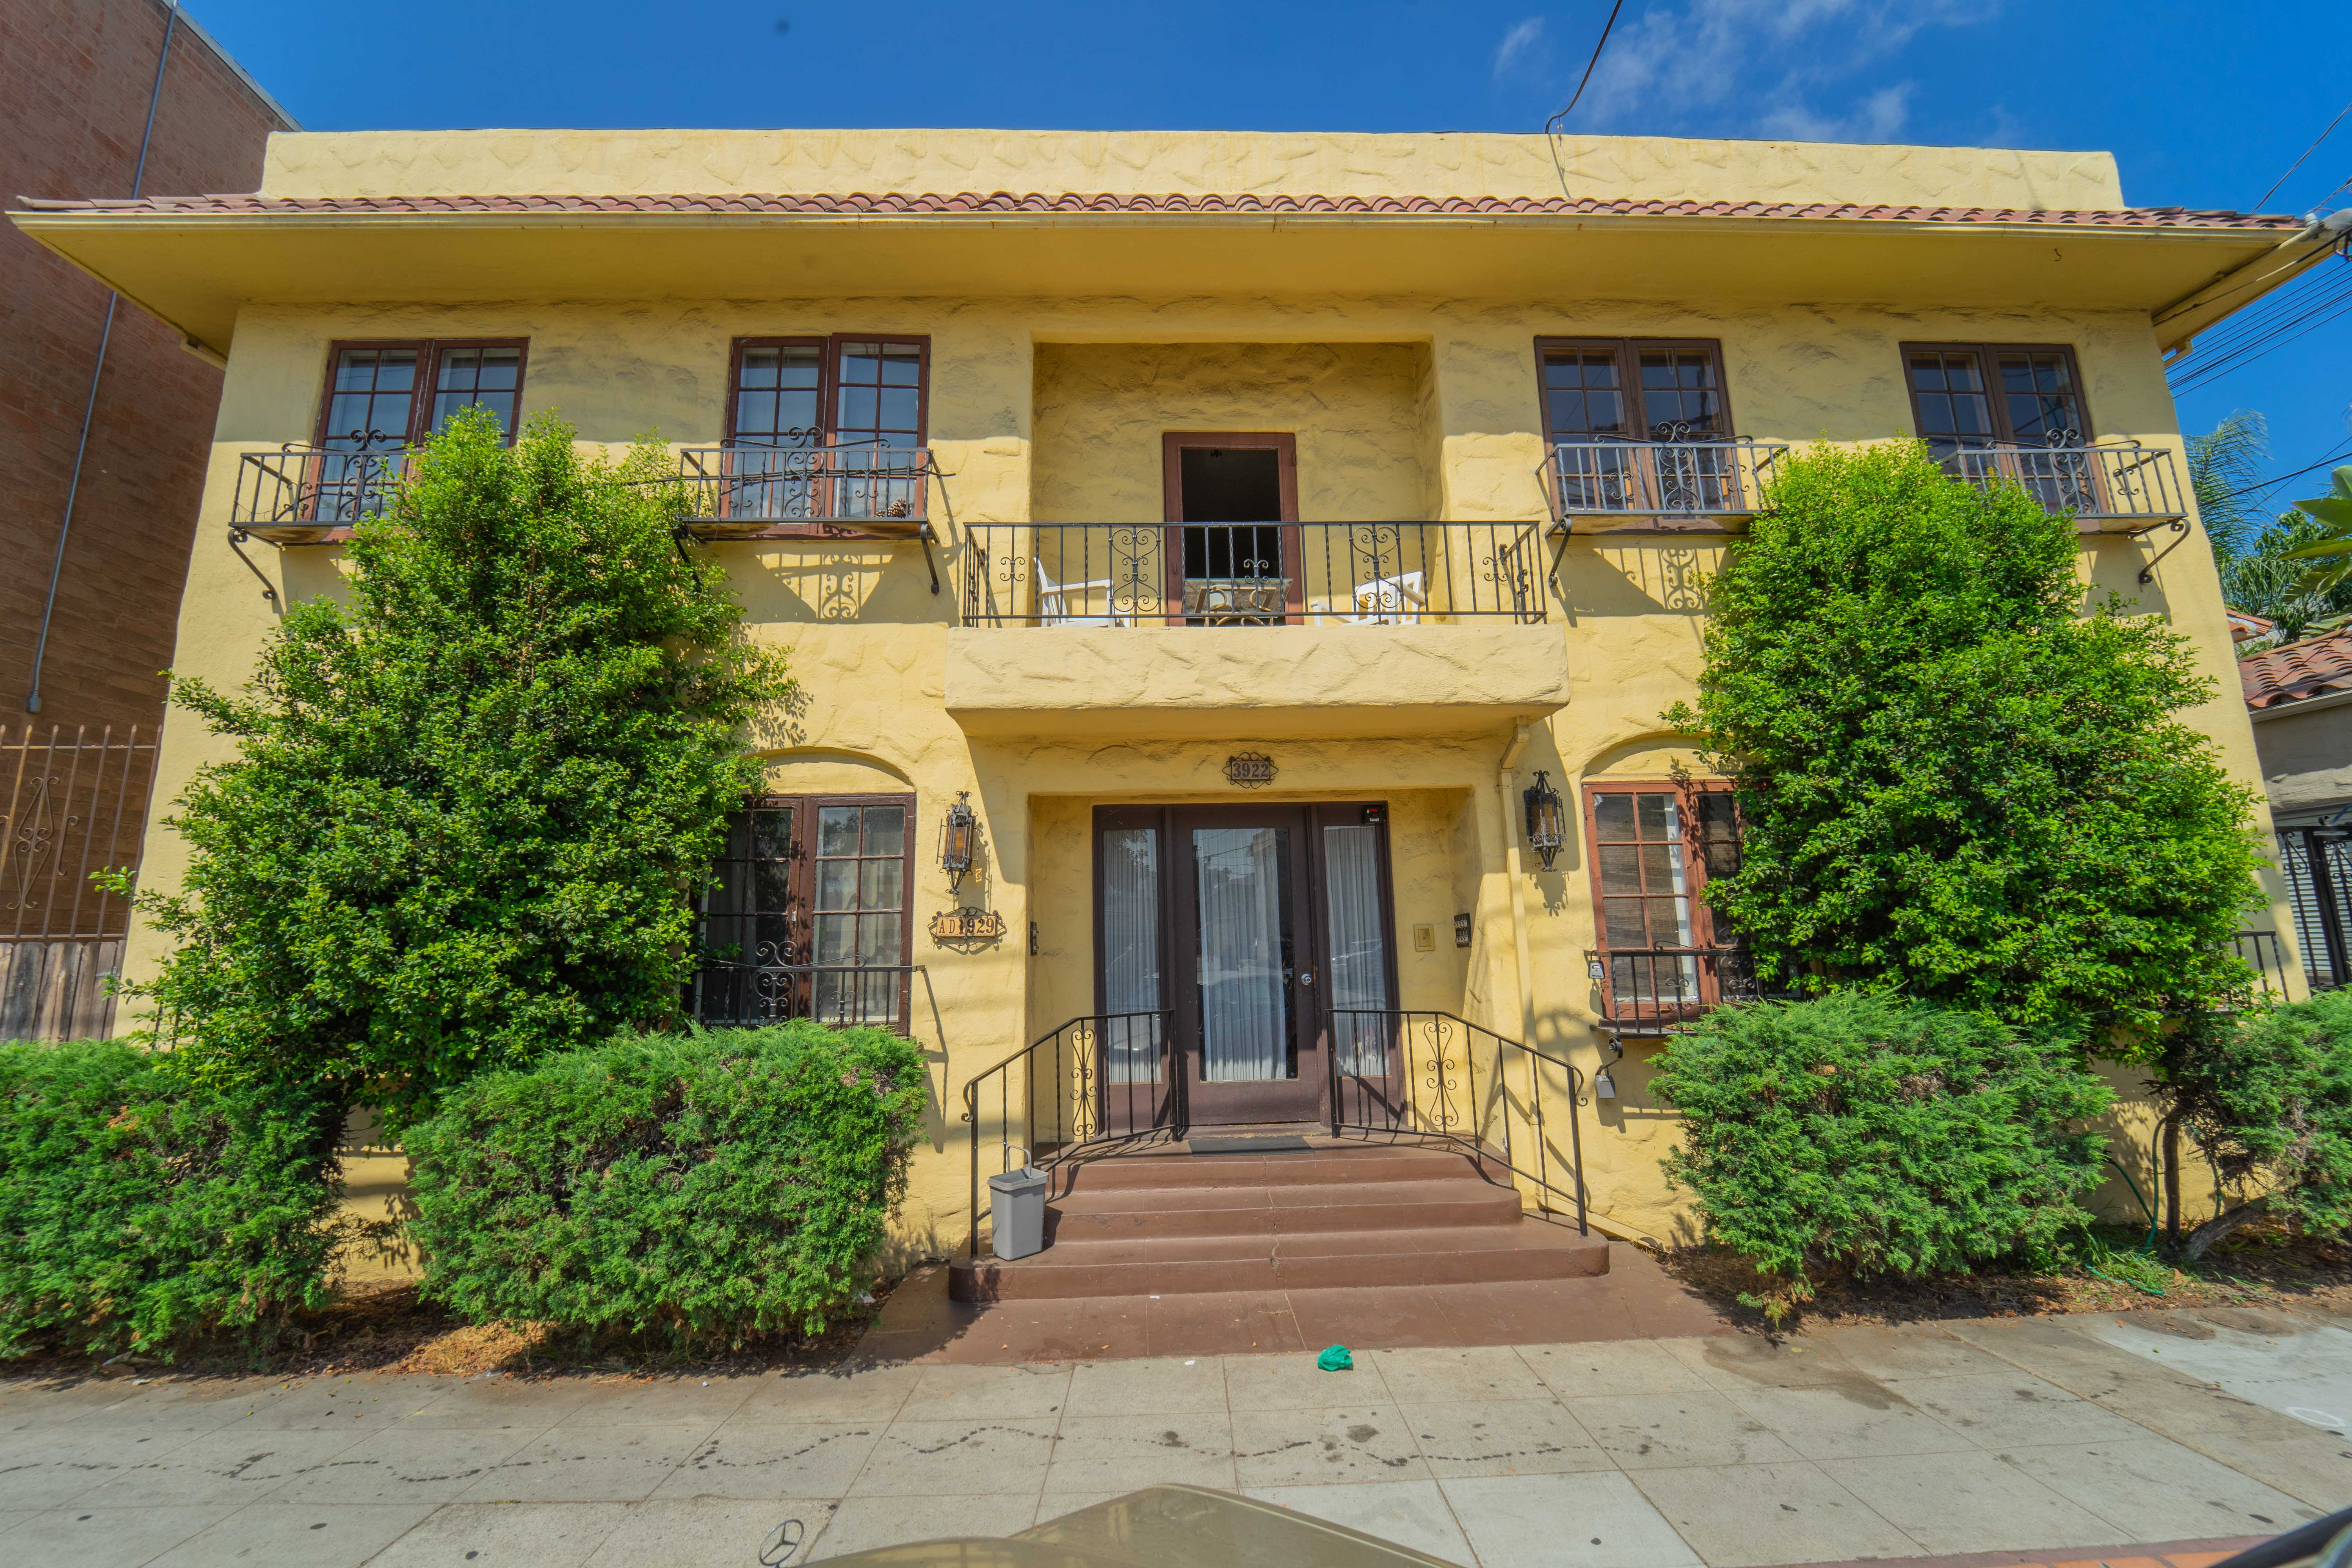 Hillcrest Apartments Sold For Nearly $2.6M | San Diego ...